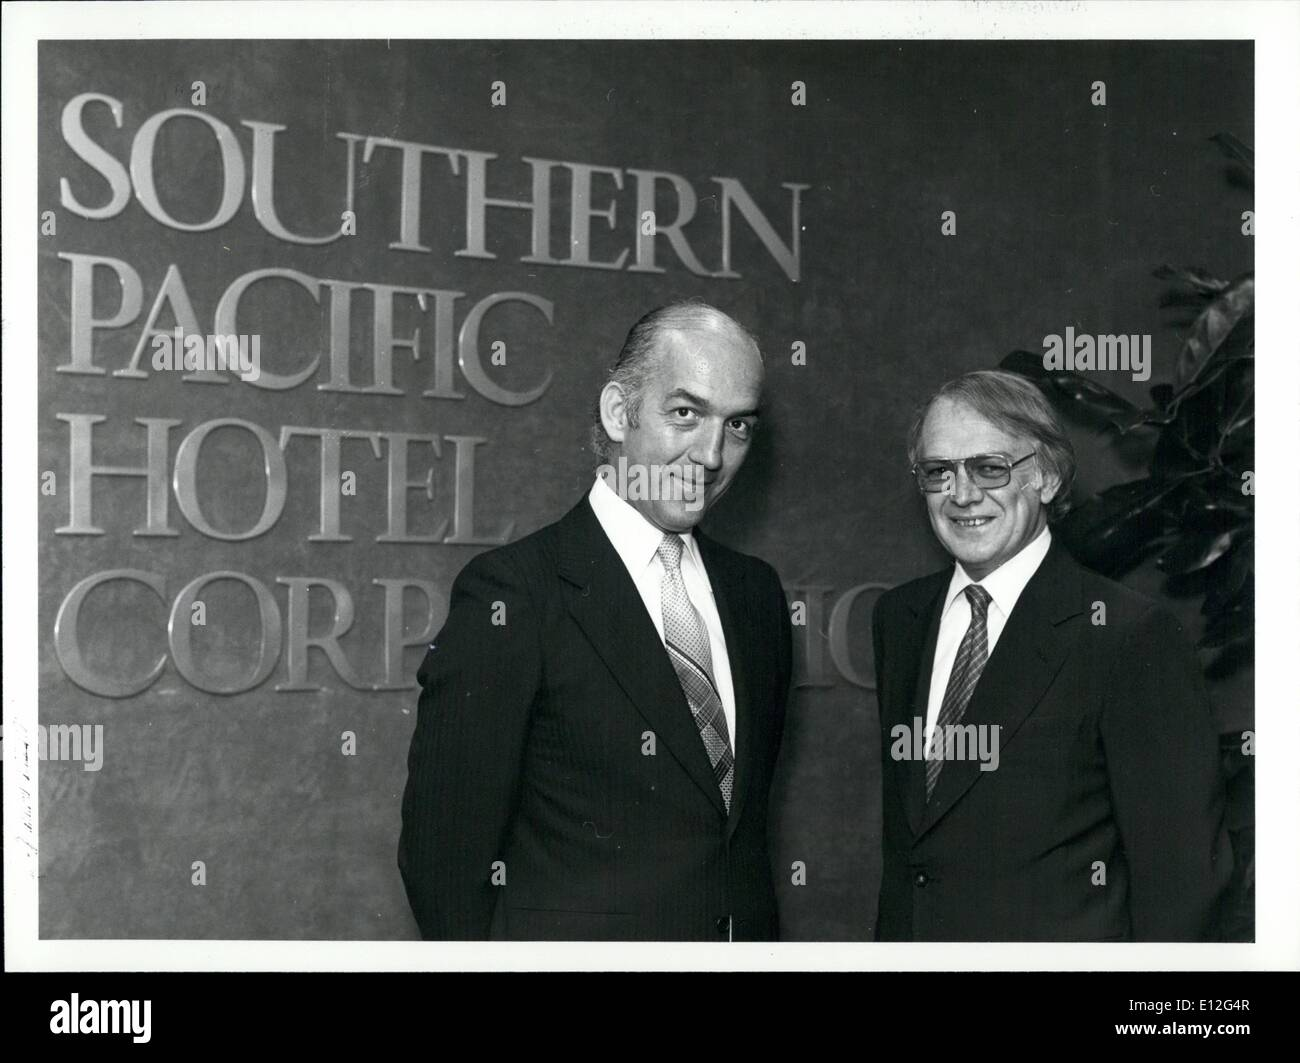 Jan. 09, 2012 - Photo shows (l. to r.) Managing Director of Southern Pacific Hotel Corporation, Roger Kirby and Group Marketing - Stock Image